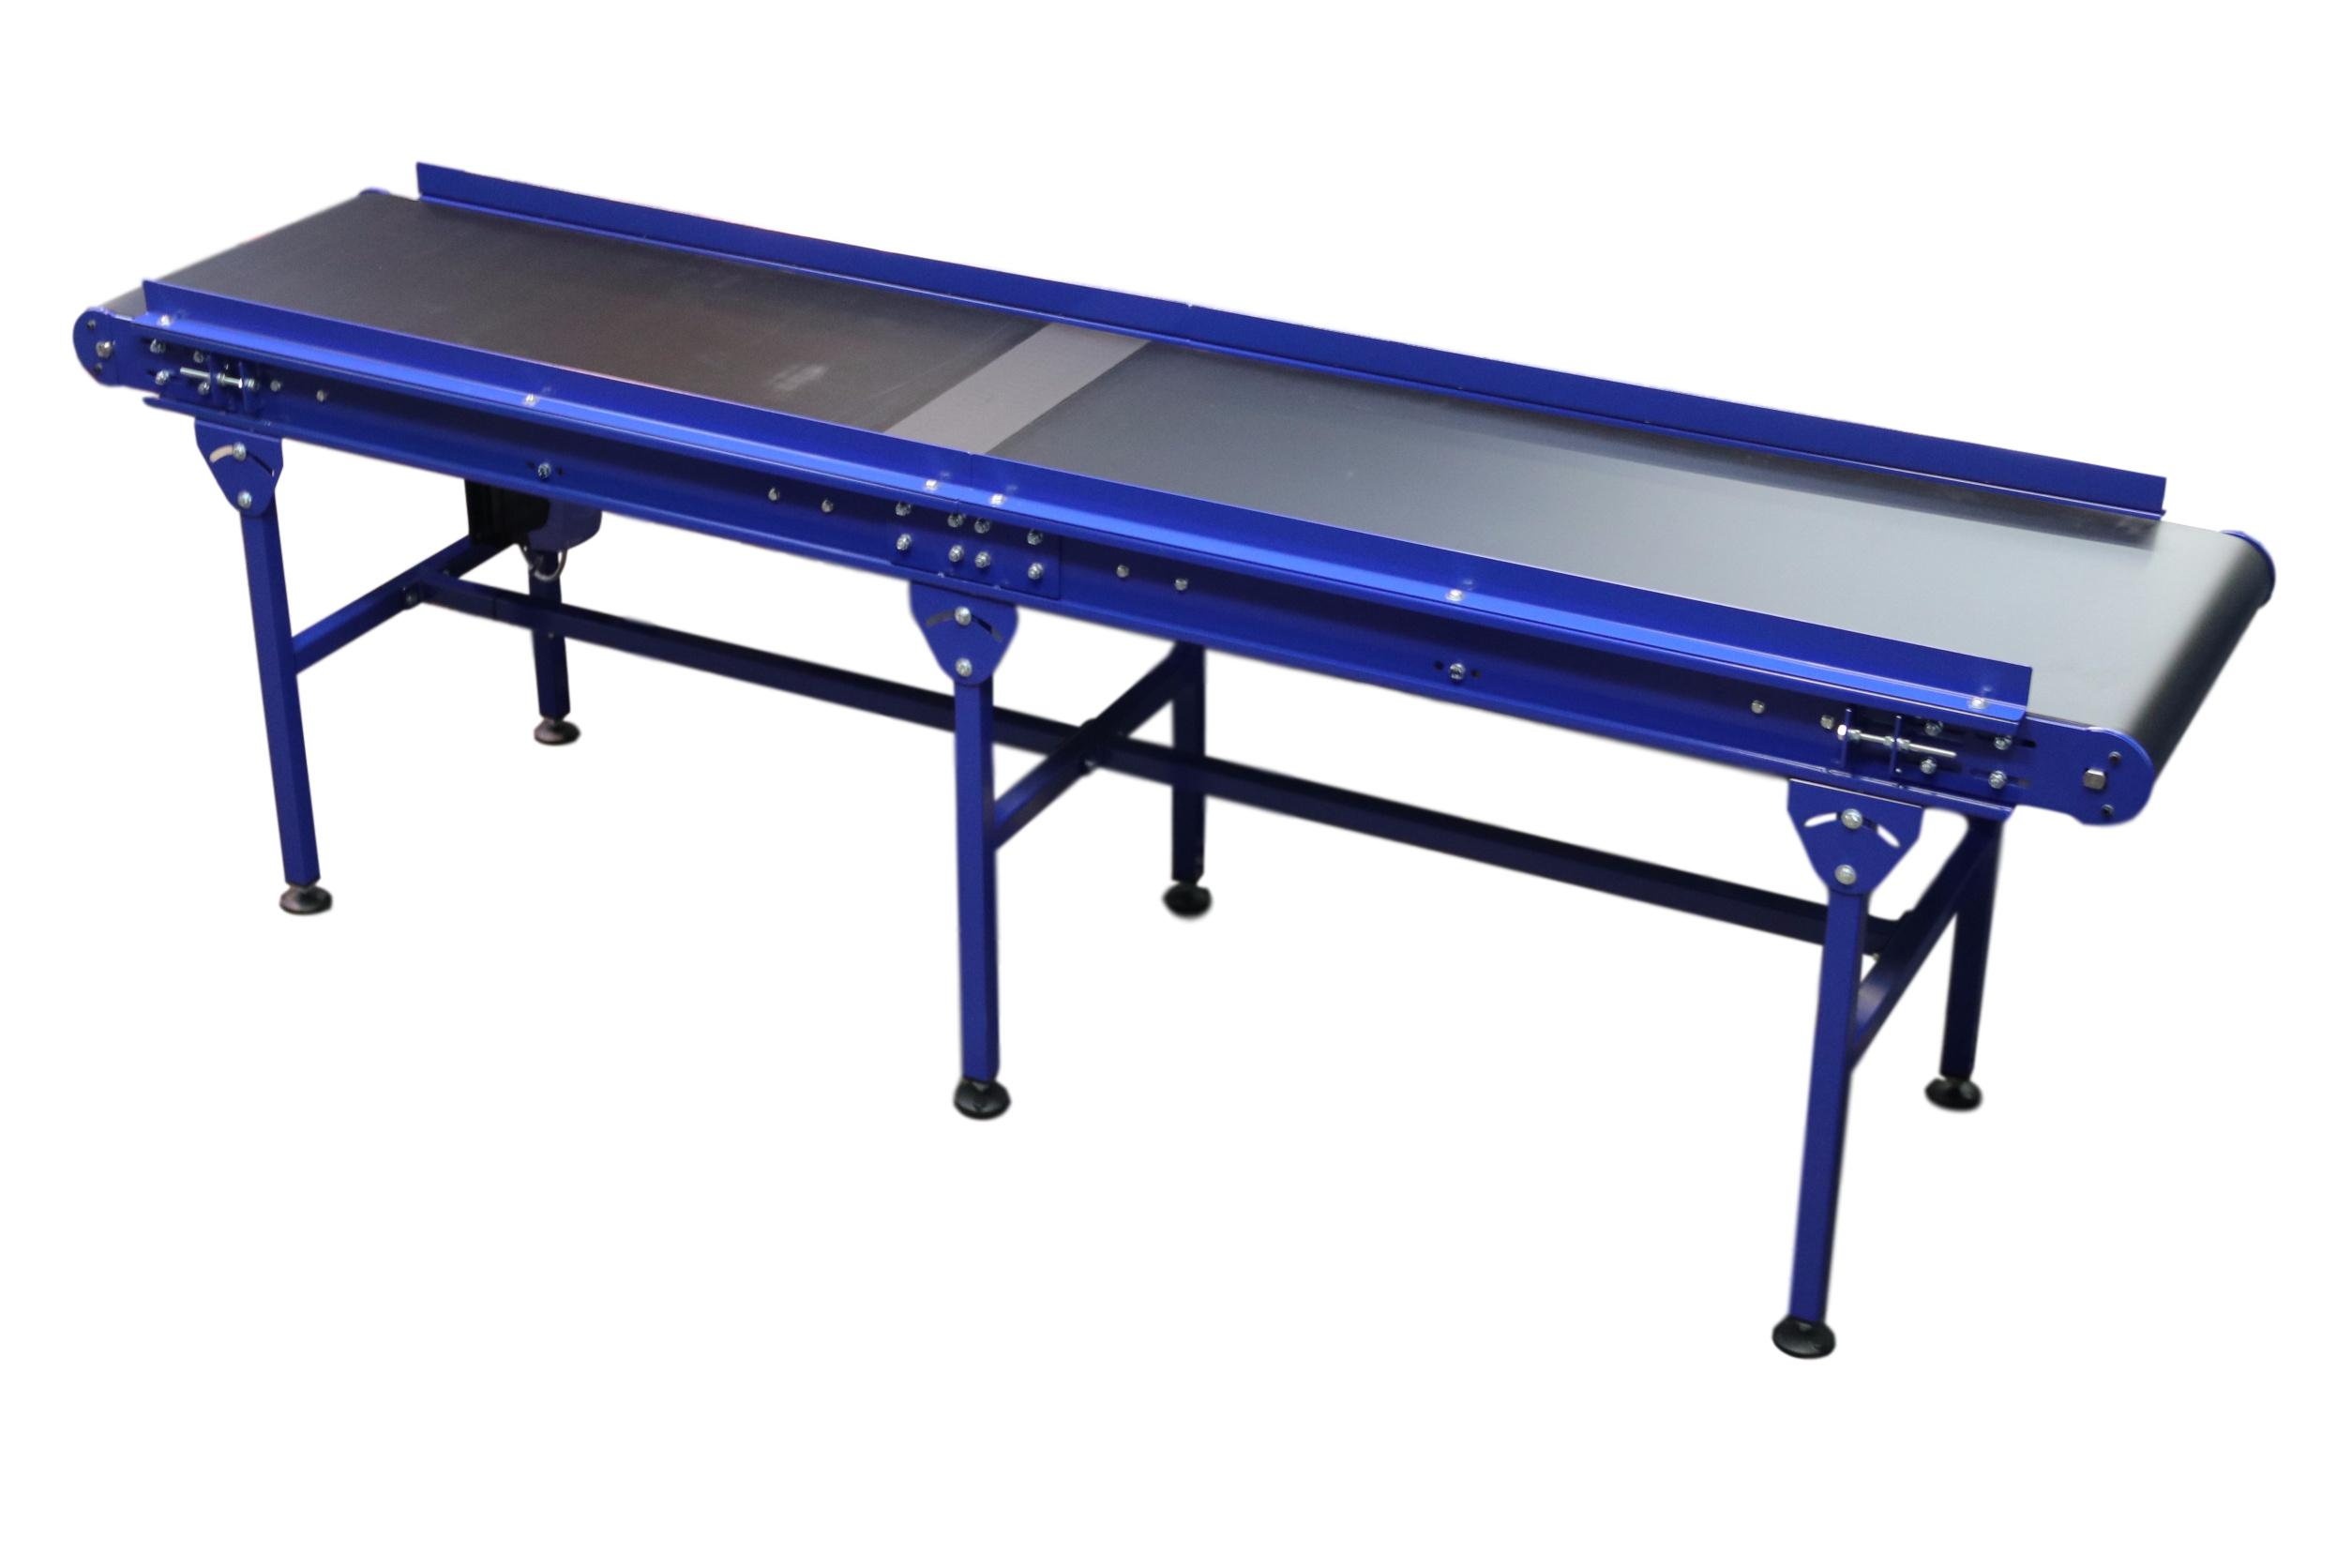 BELT CONVEYOR UK BELT CONVEYOR MANUFACTURERS BELT CONVEYOR MANUFACTURERS UK CONVEYOR SUPPLIER CONVEYOR SUPPLIERS CONVEYOR MANUFACTURERS UK CONVEYOR SYSTEMS UK